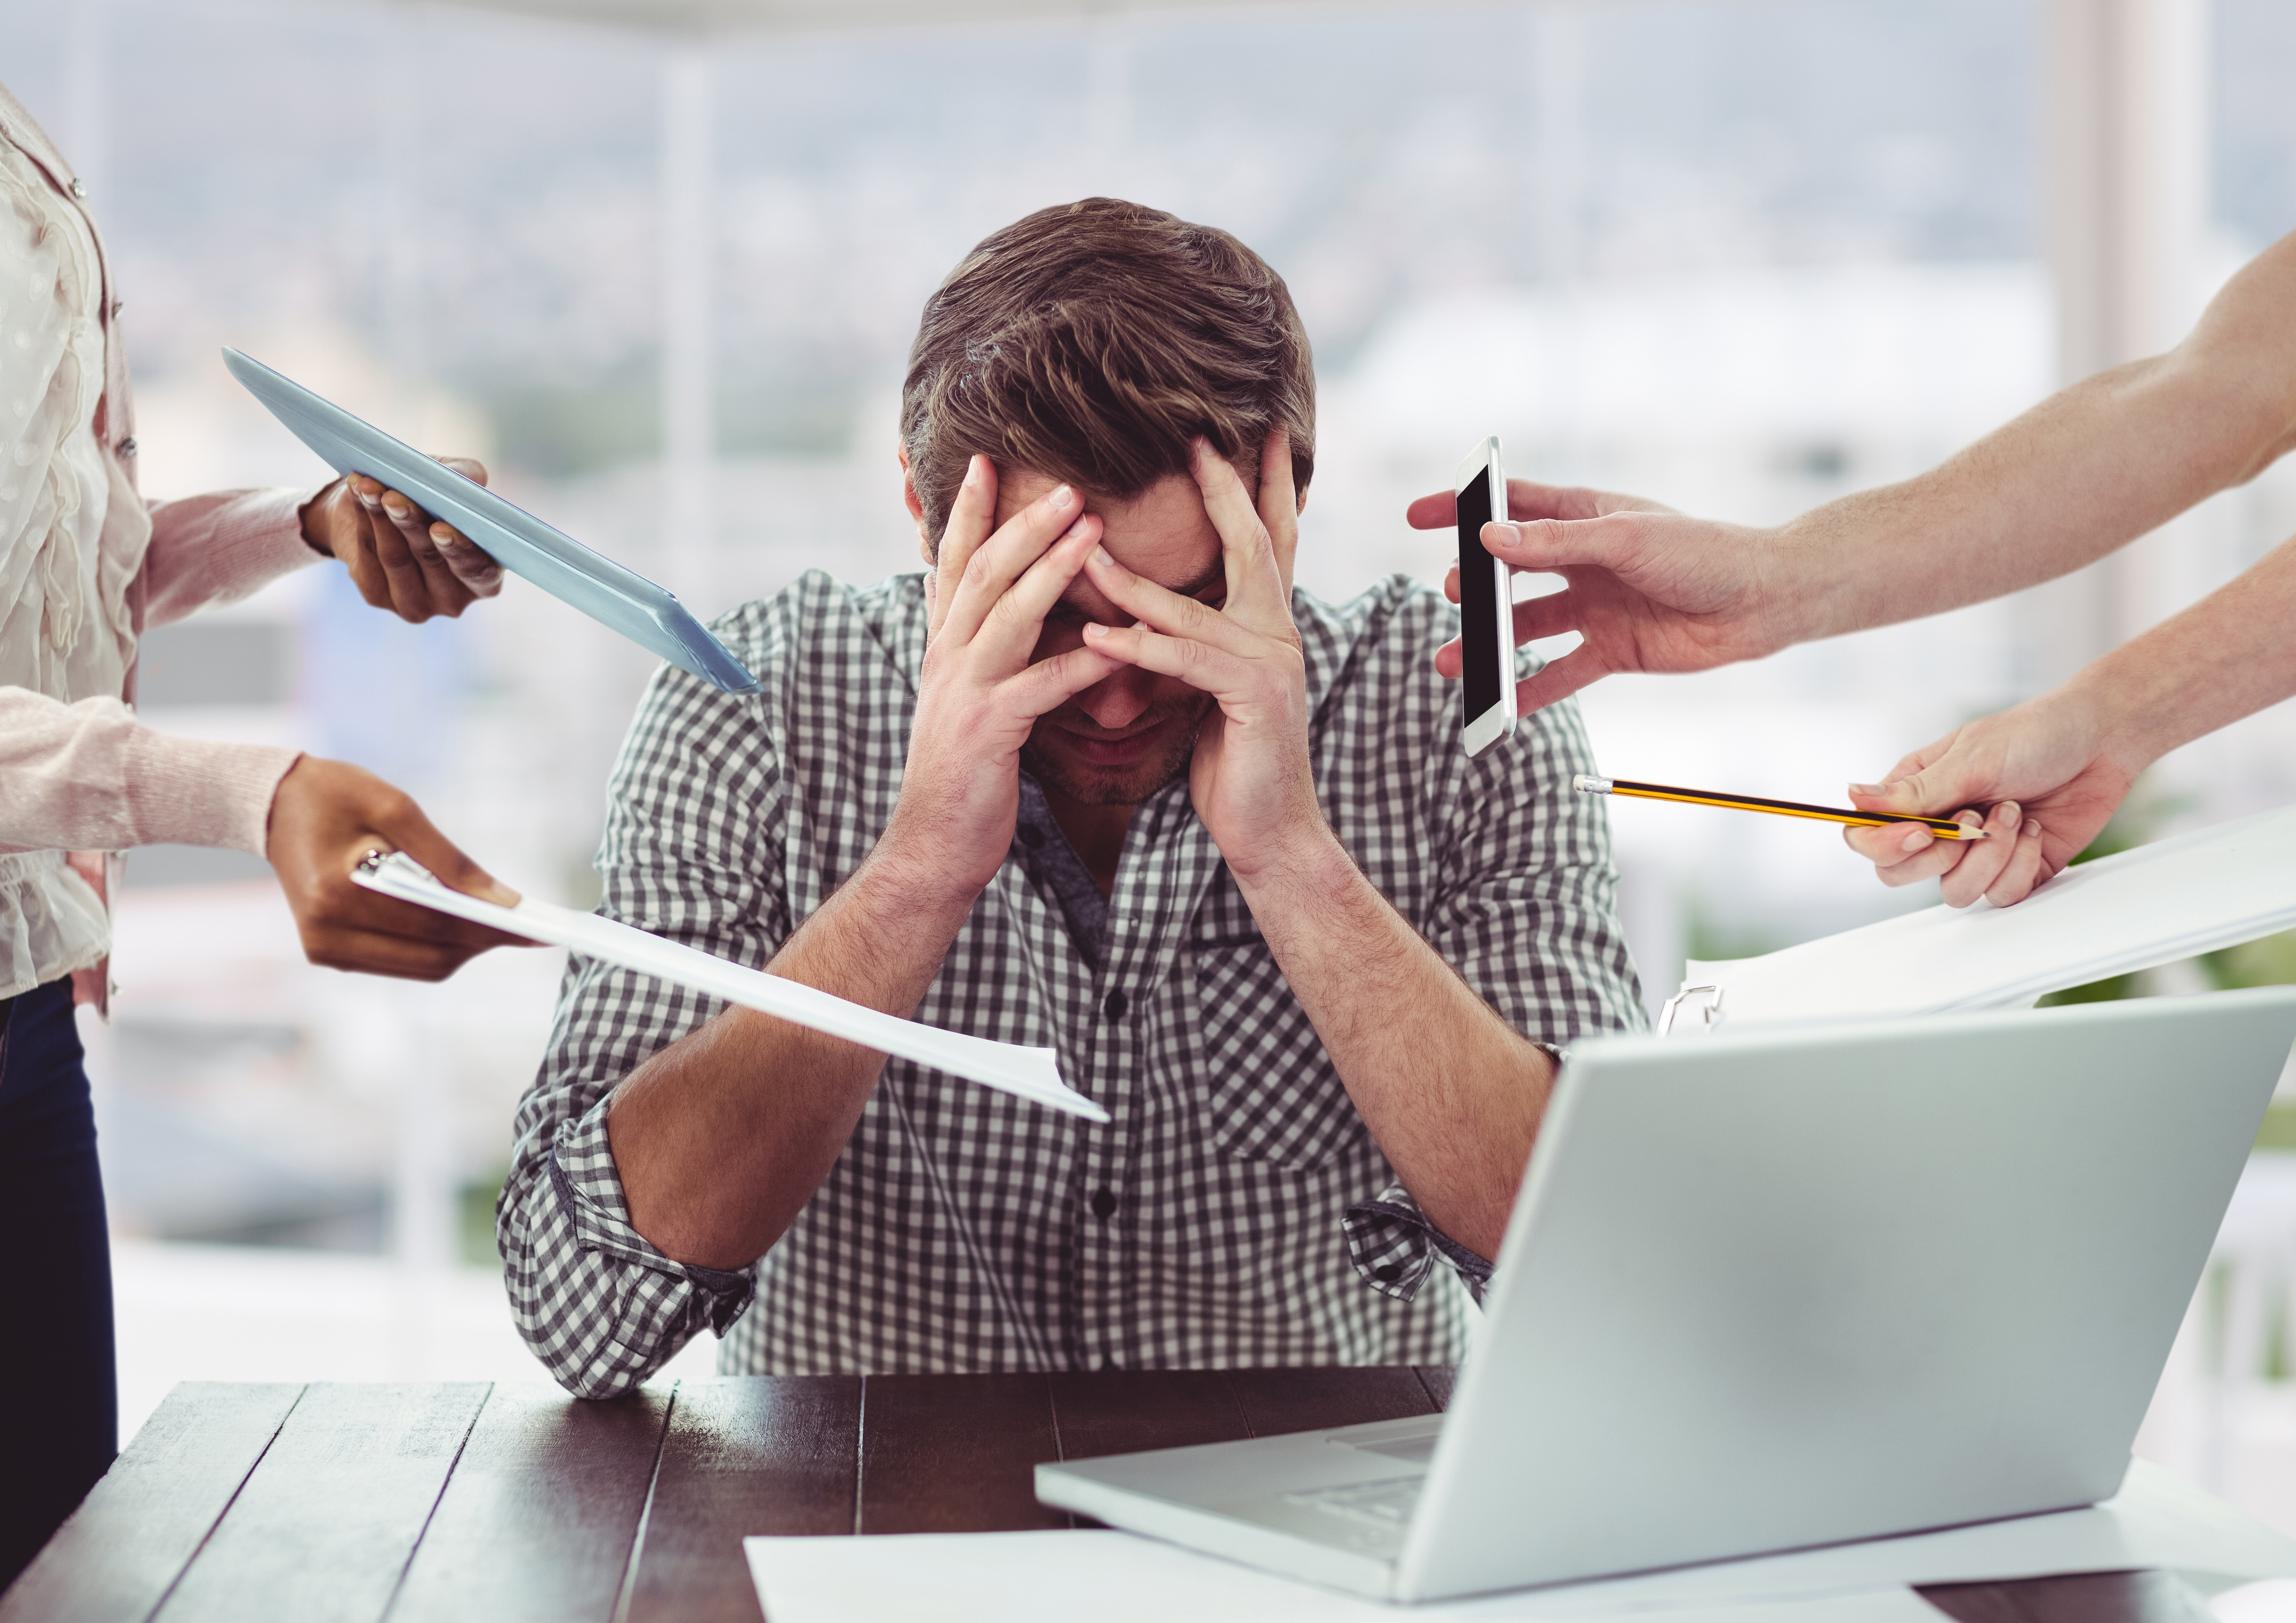 How to Identify Stress Triggers